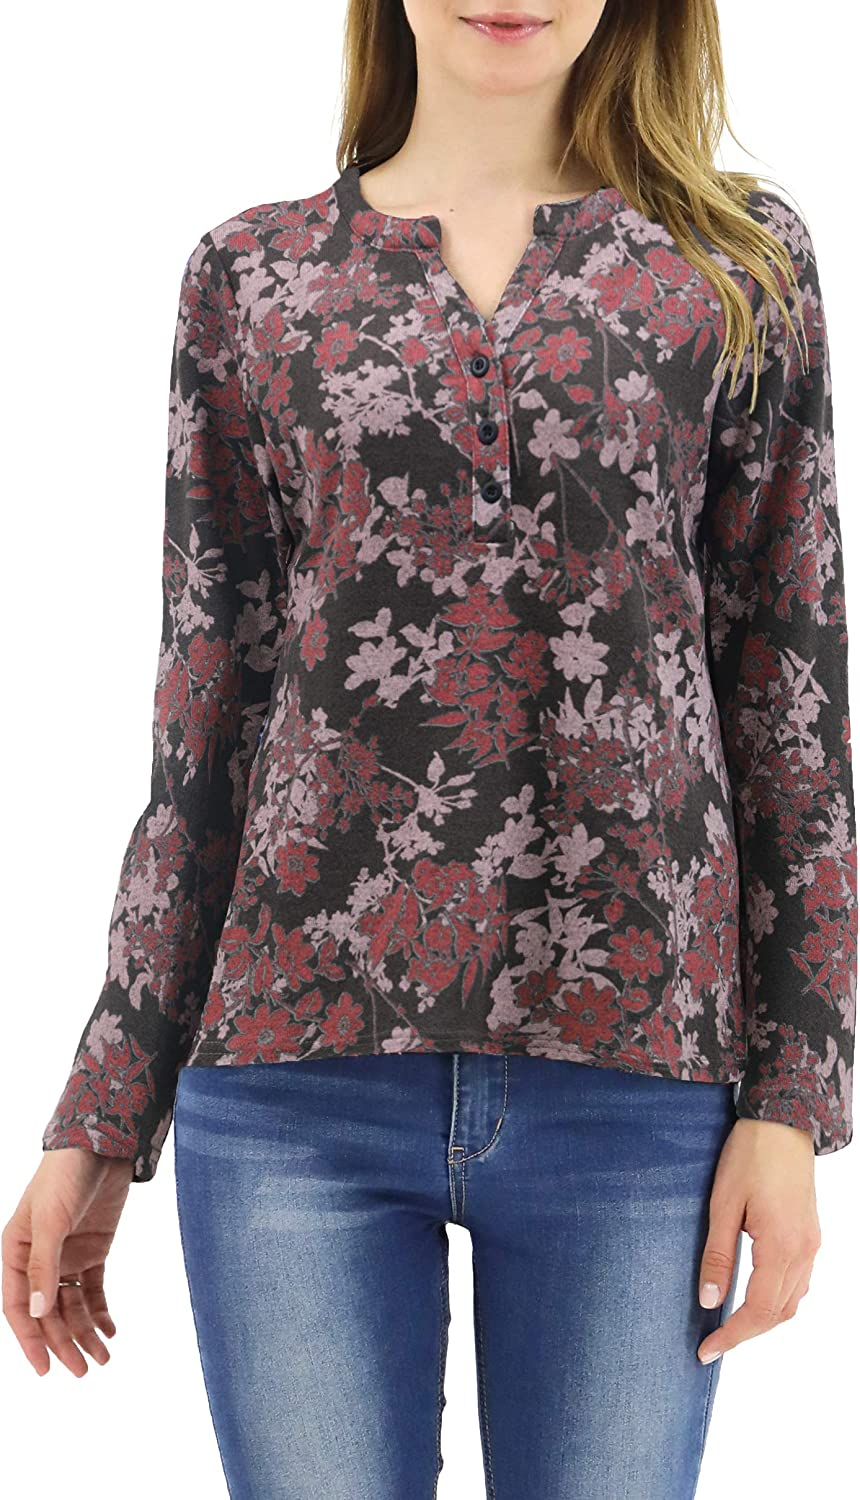 LuluBerry Women's V-Neck Floral Print Button Up Blouse